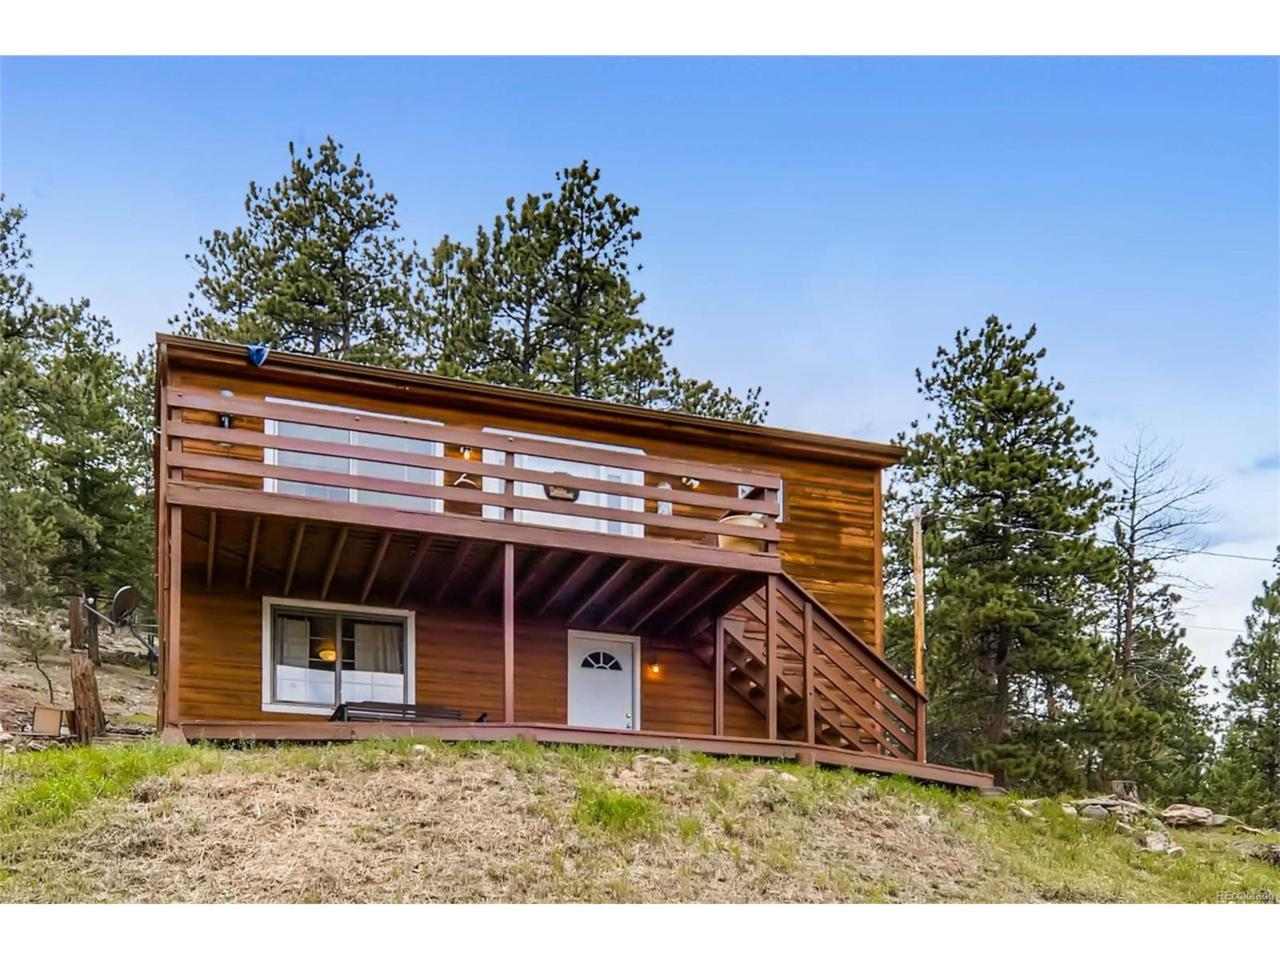 334 Sleepy Hollow Drive, Bailey, CO 80421 (MLS #5216689) :: 8z Real Estate